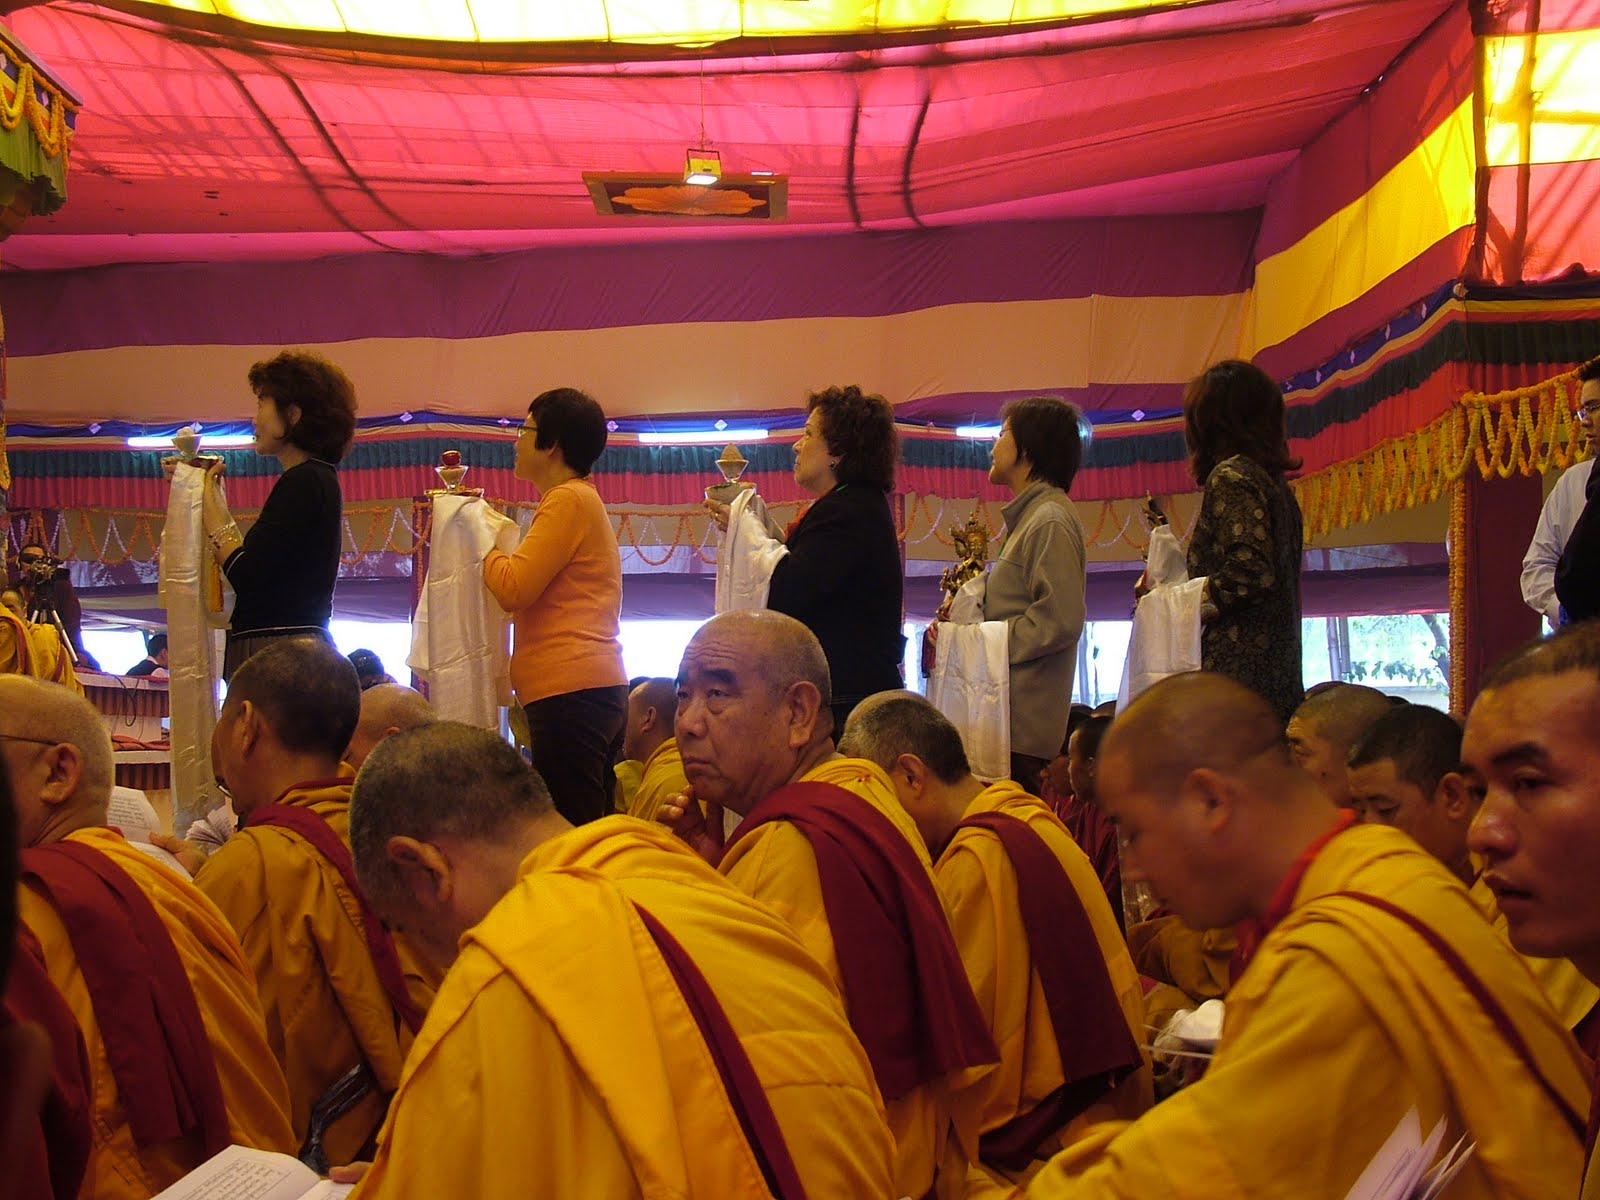 FPMT Geshes during long life puja offered to His Holiness the Dalai Lama in Saranath January 2008.